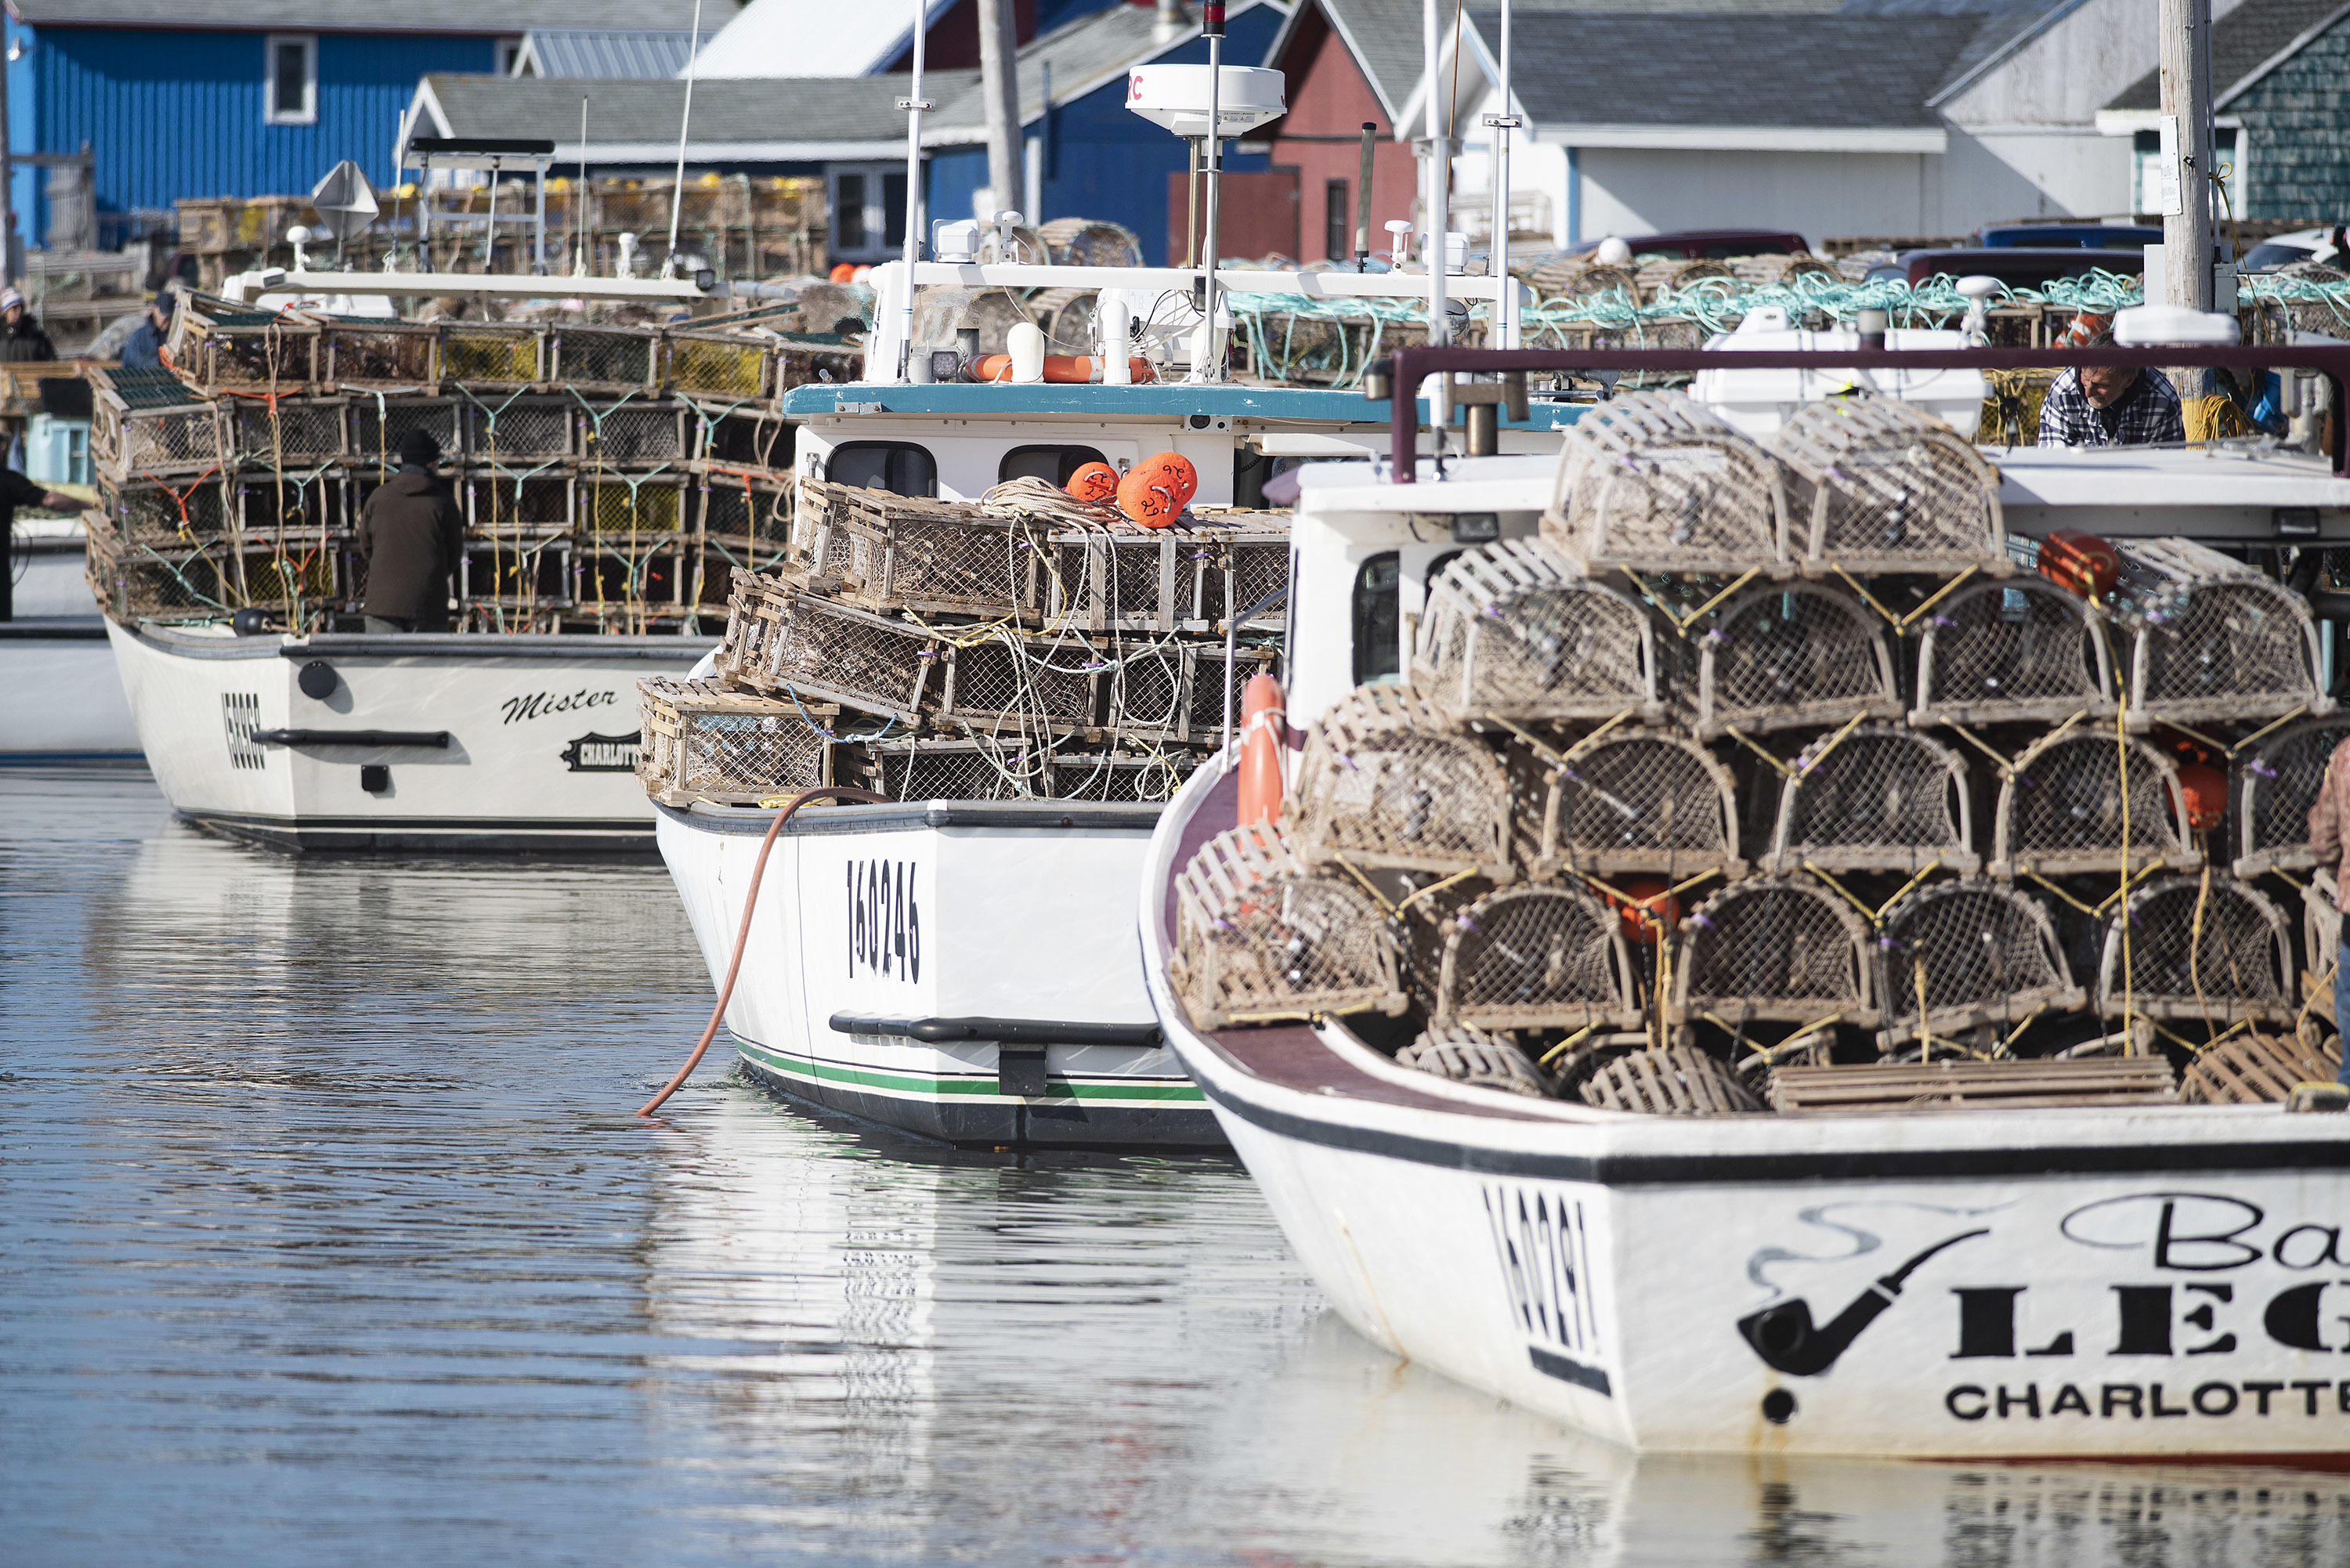 The wharf at North Rustico was jammed with boats and traps. (Brian McInnis)